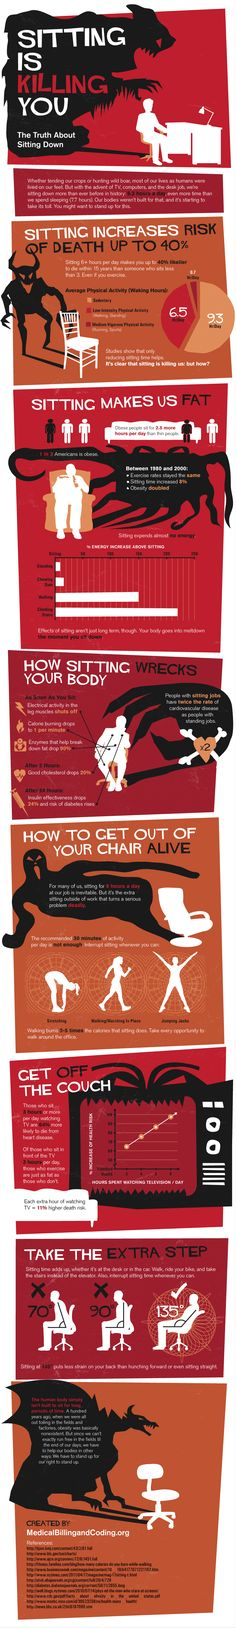 Great infographic about the negative effects of sitting. Definitely worth a look.